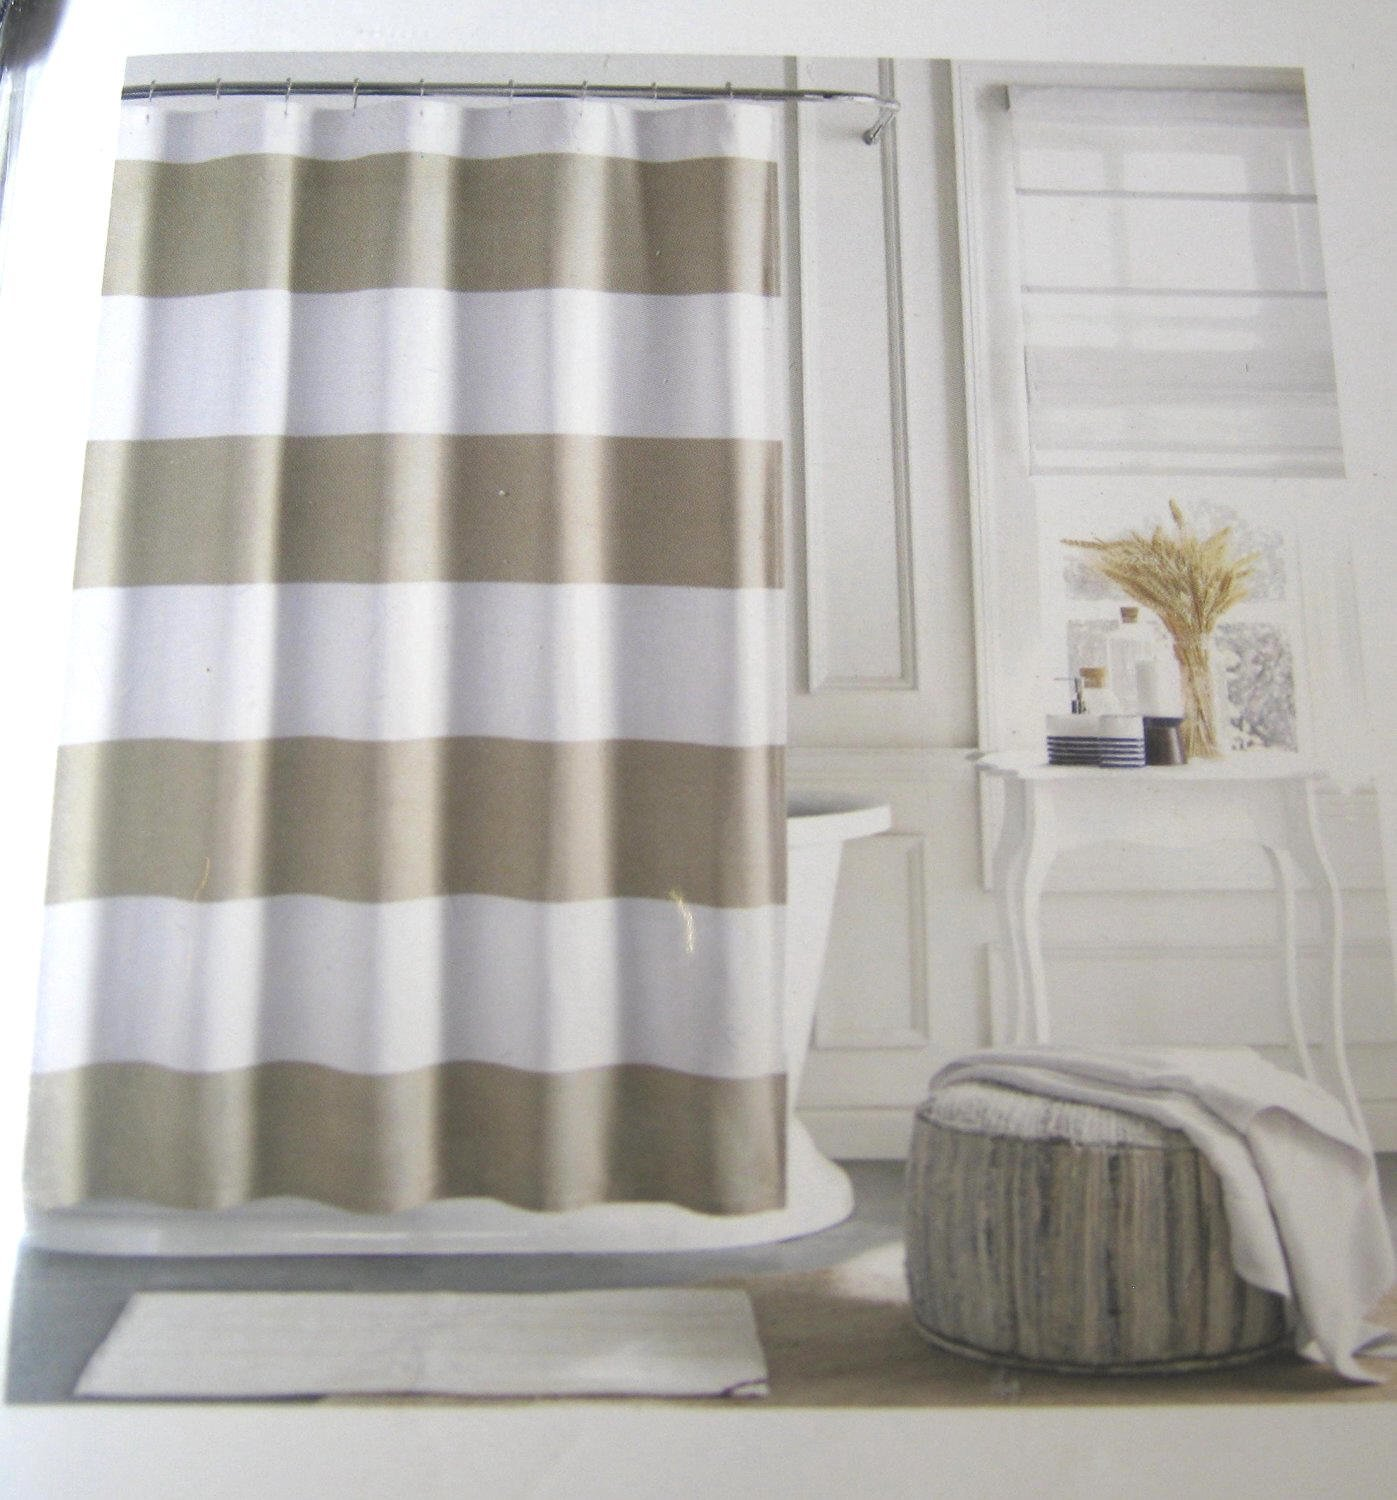 Tommy Hilfiger Cabana Stripe Tan Beige and White Shower Curtain